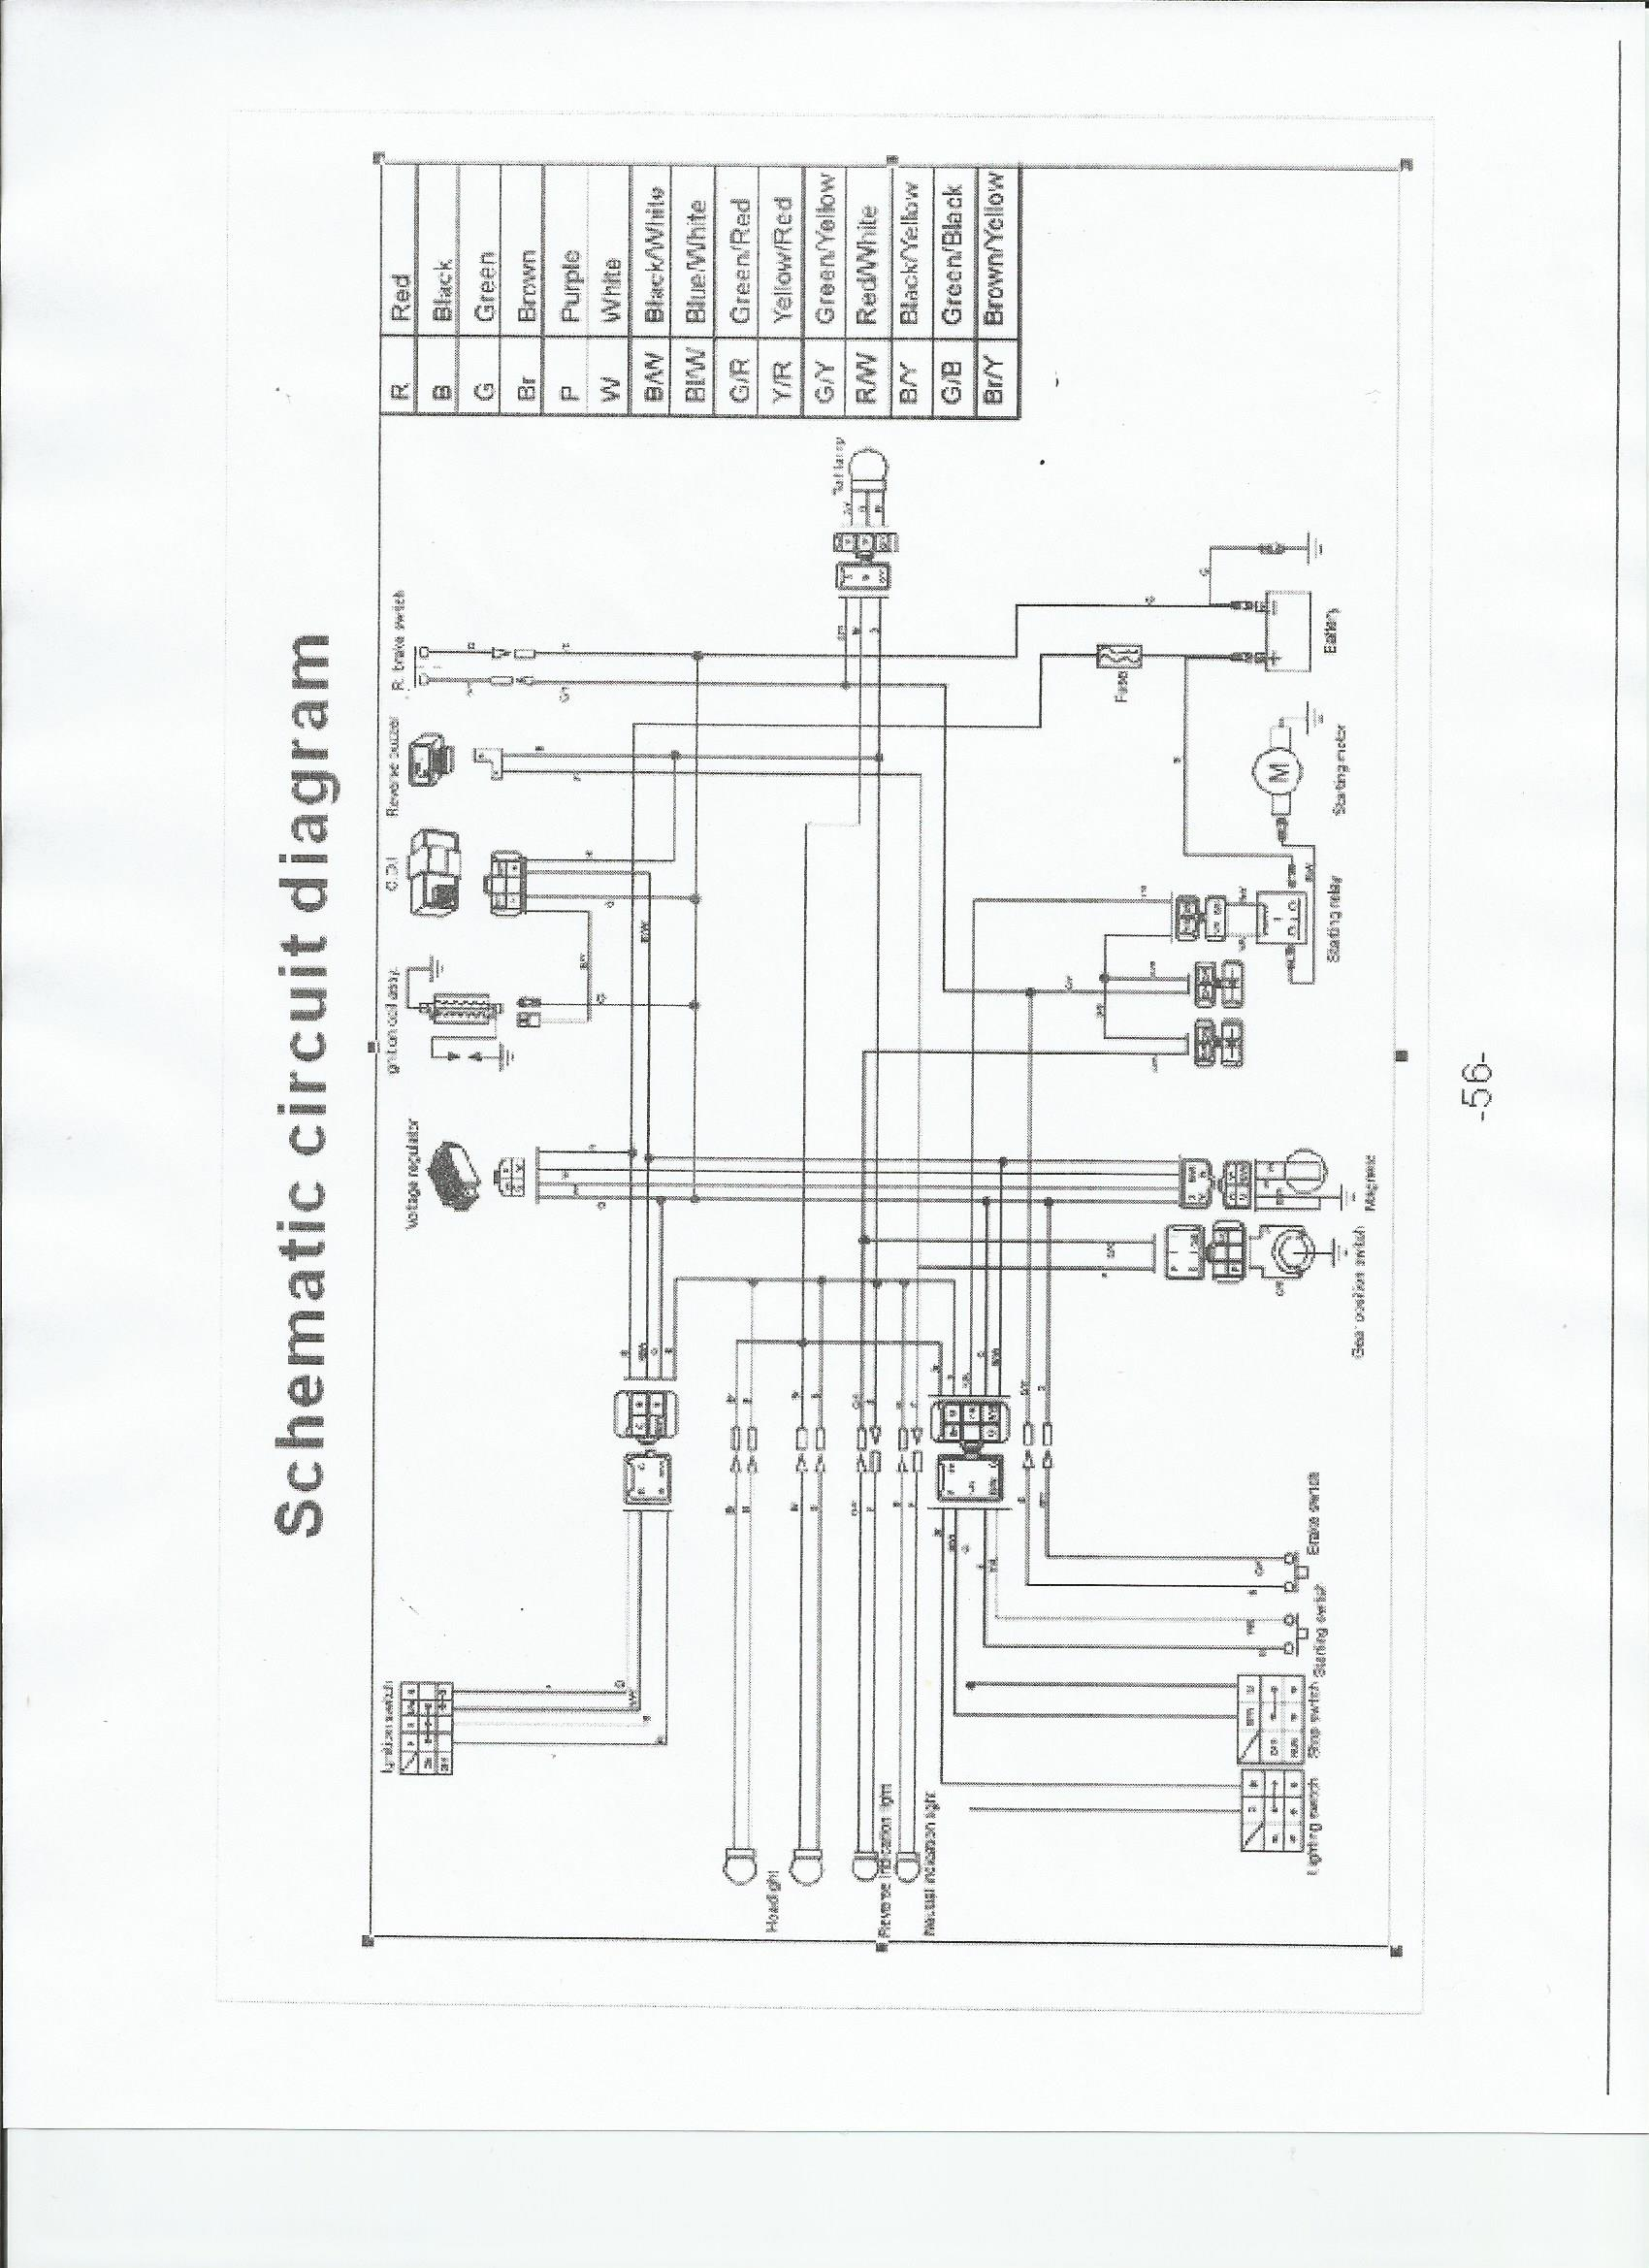 Groovy Honda Trx450Es Wiring Diagram 2000 Honda Trx450Es Wiring Diagram Wiring Digital Resources Remcakbiperorg